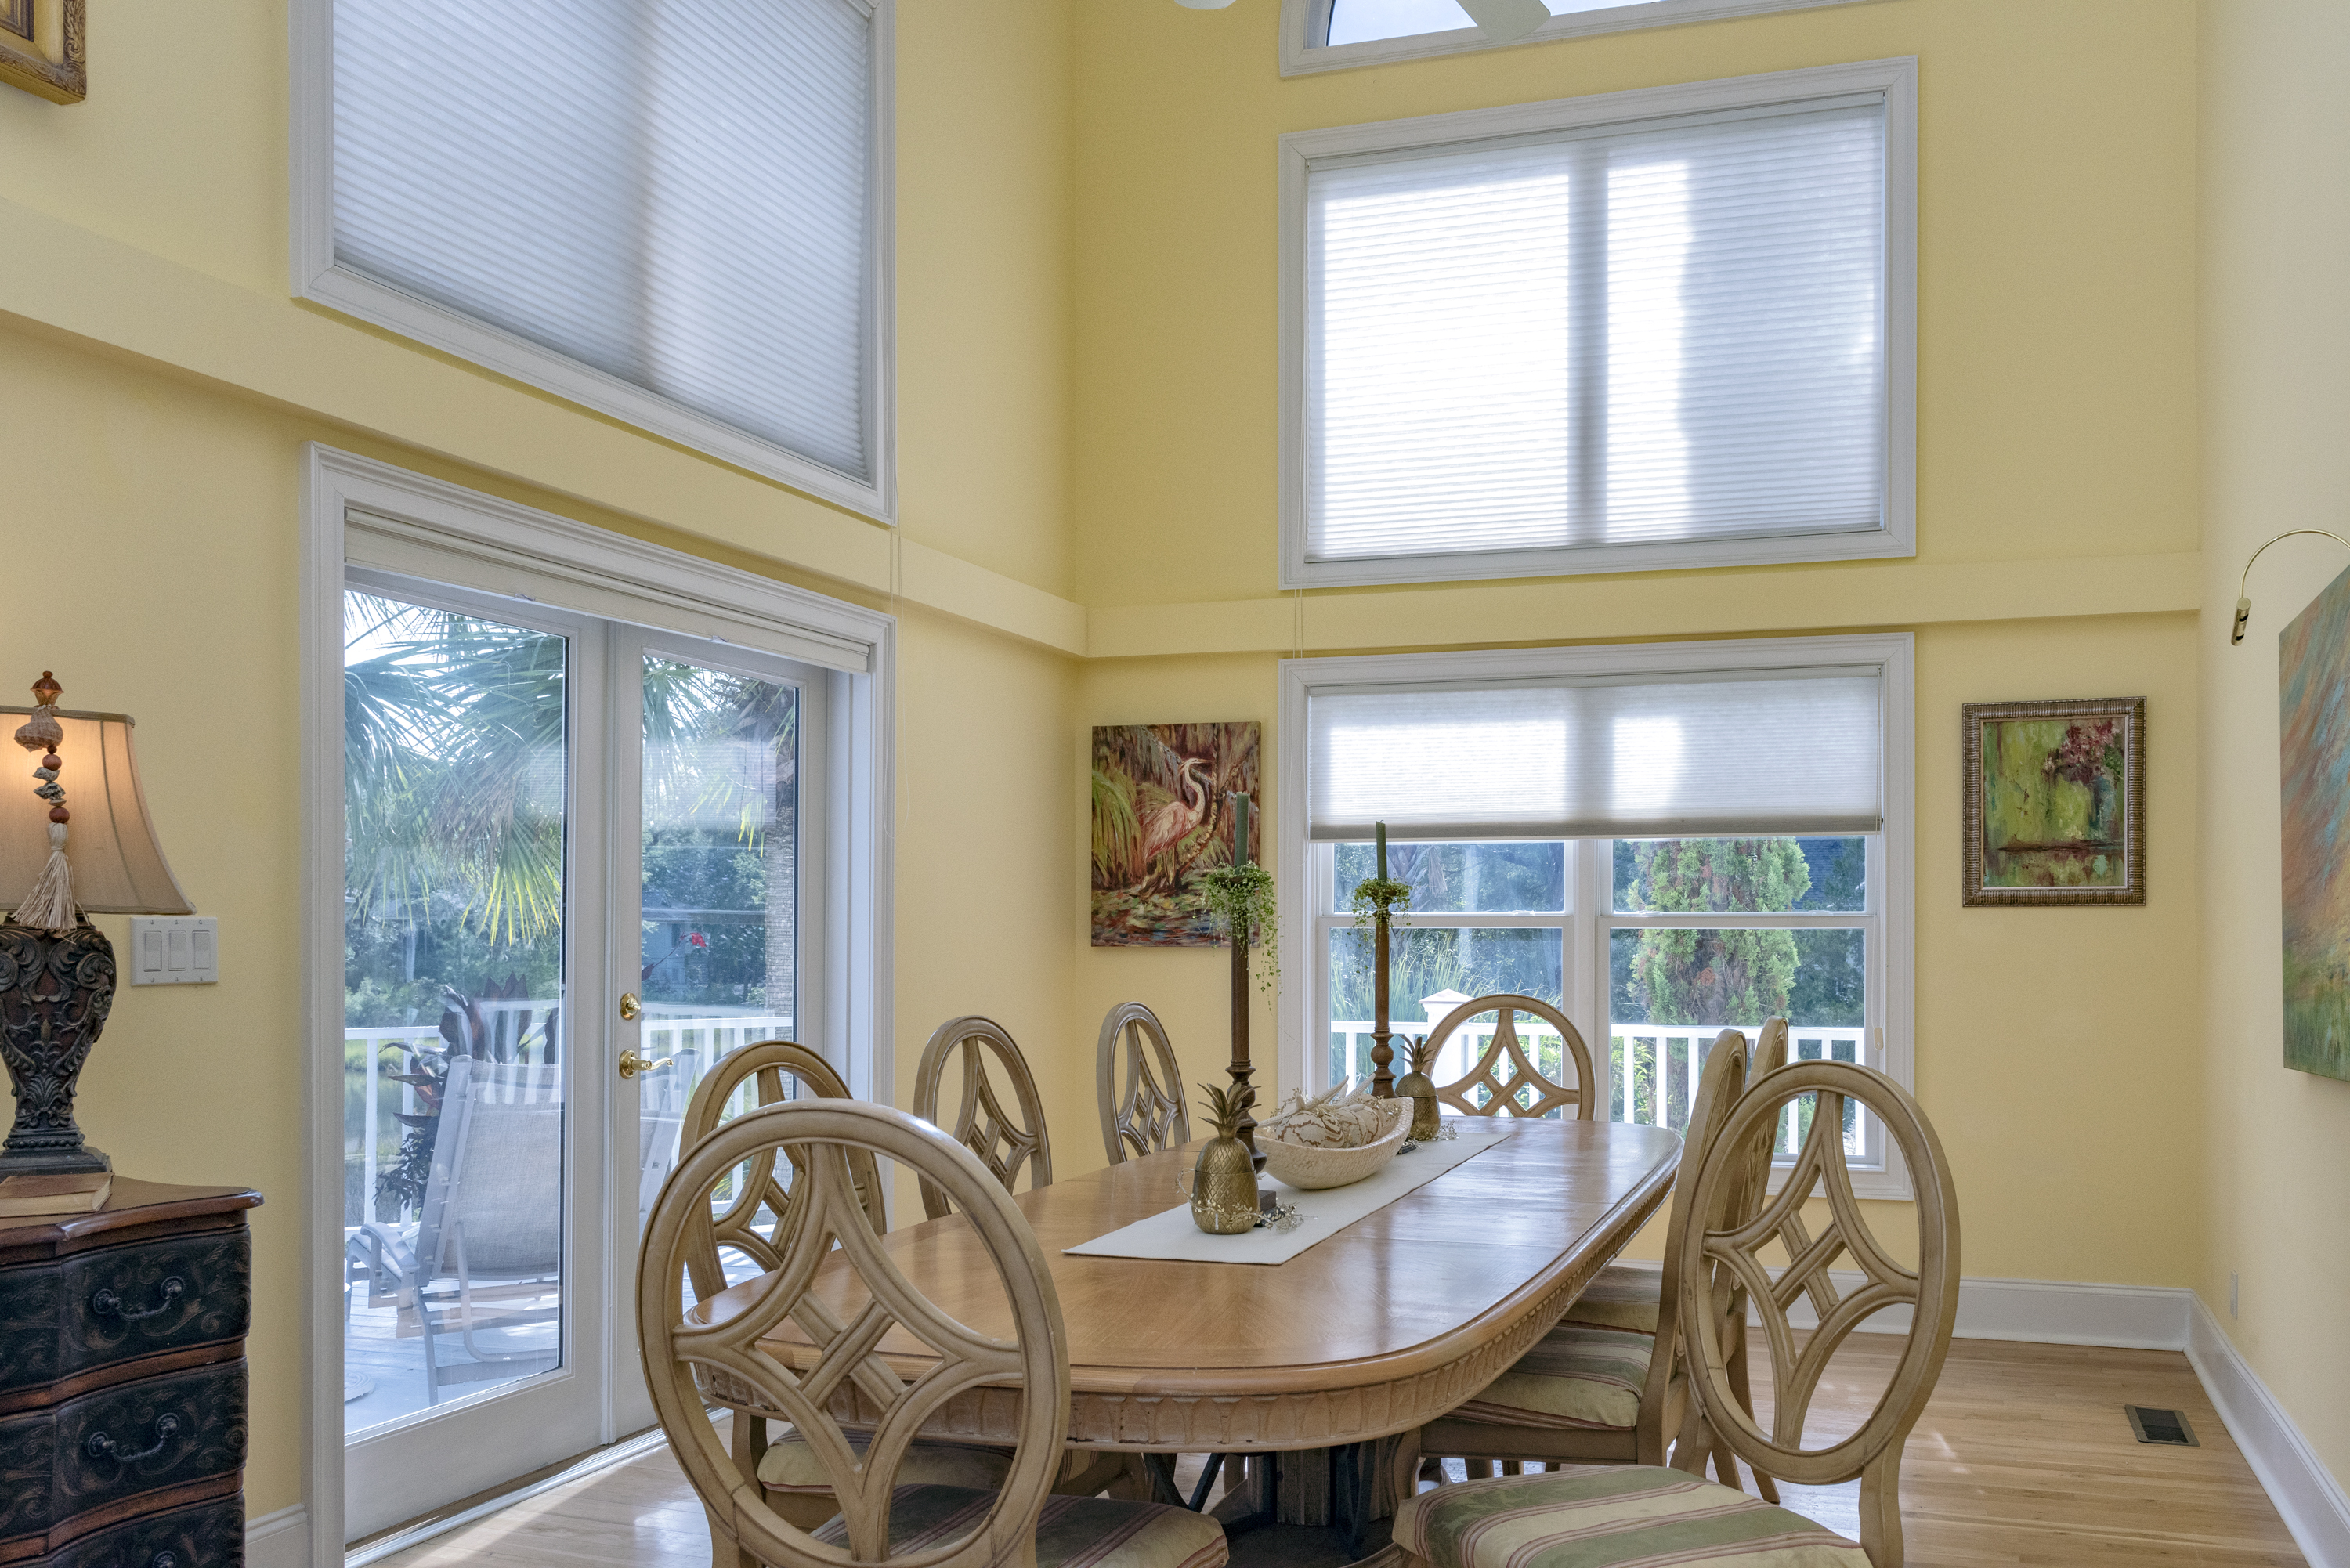 Dining room seating for at least 8